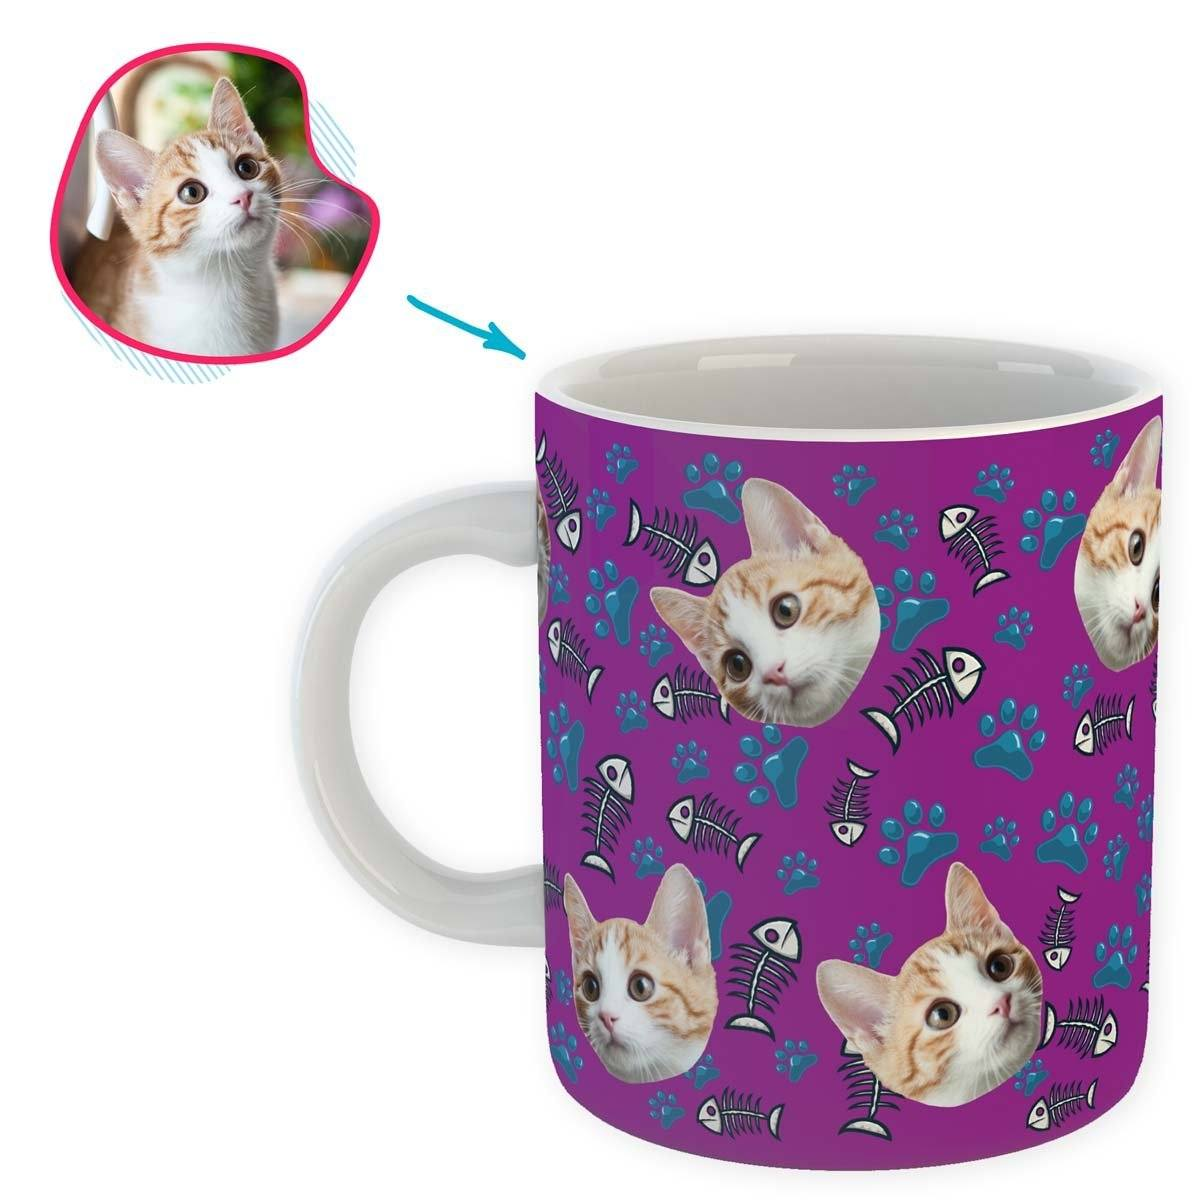 purple Cat mug personalized with photo of face printed on it